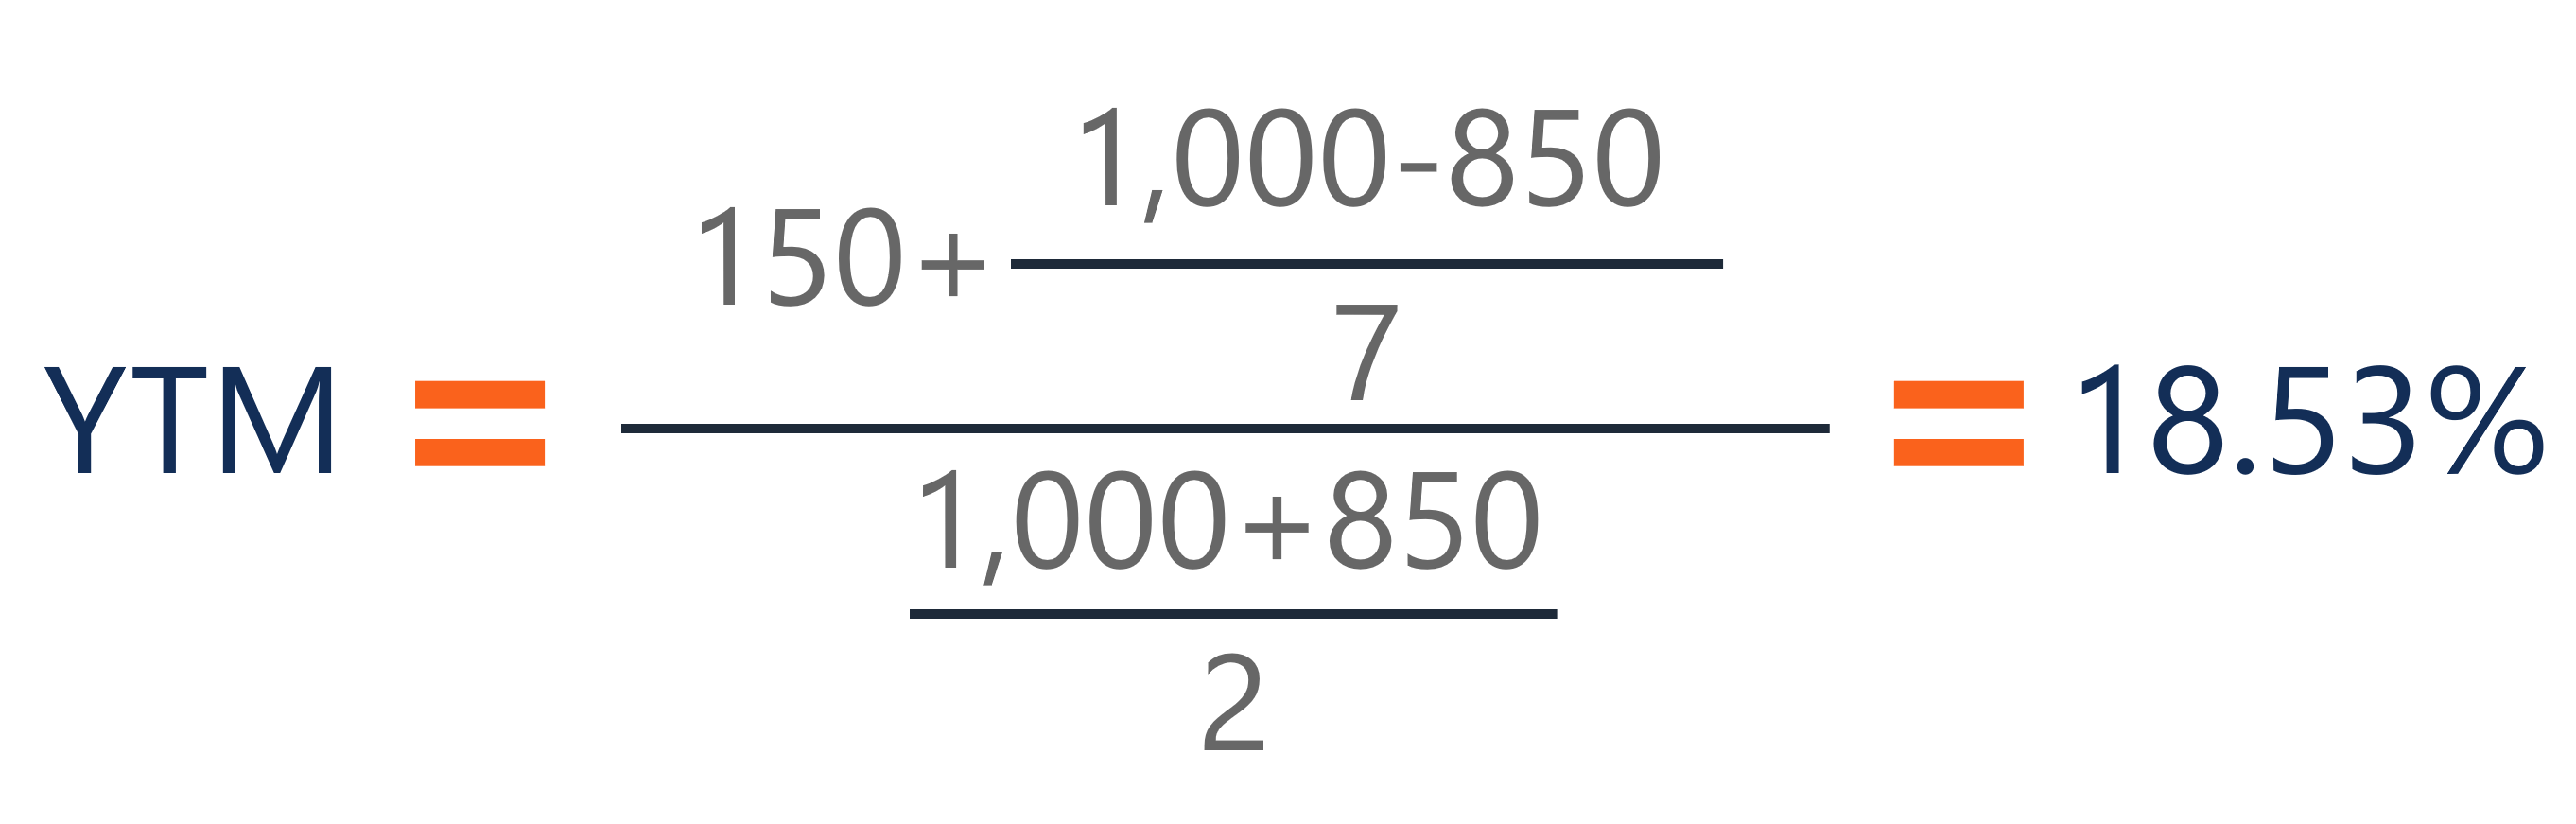 Yield to Maturity Example 1